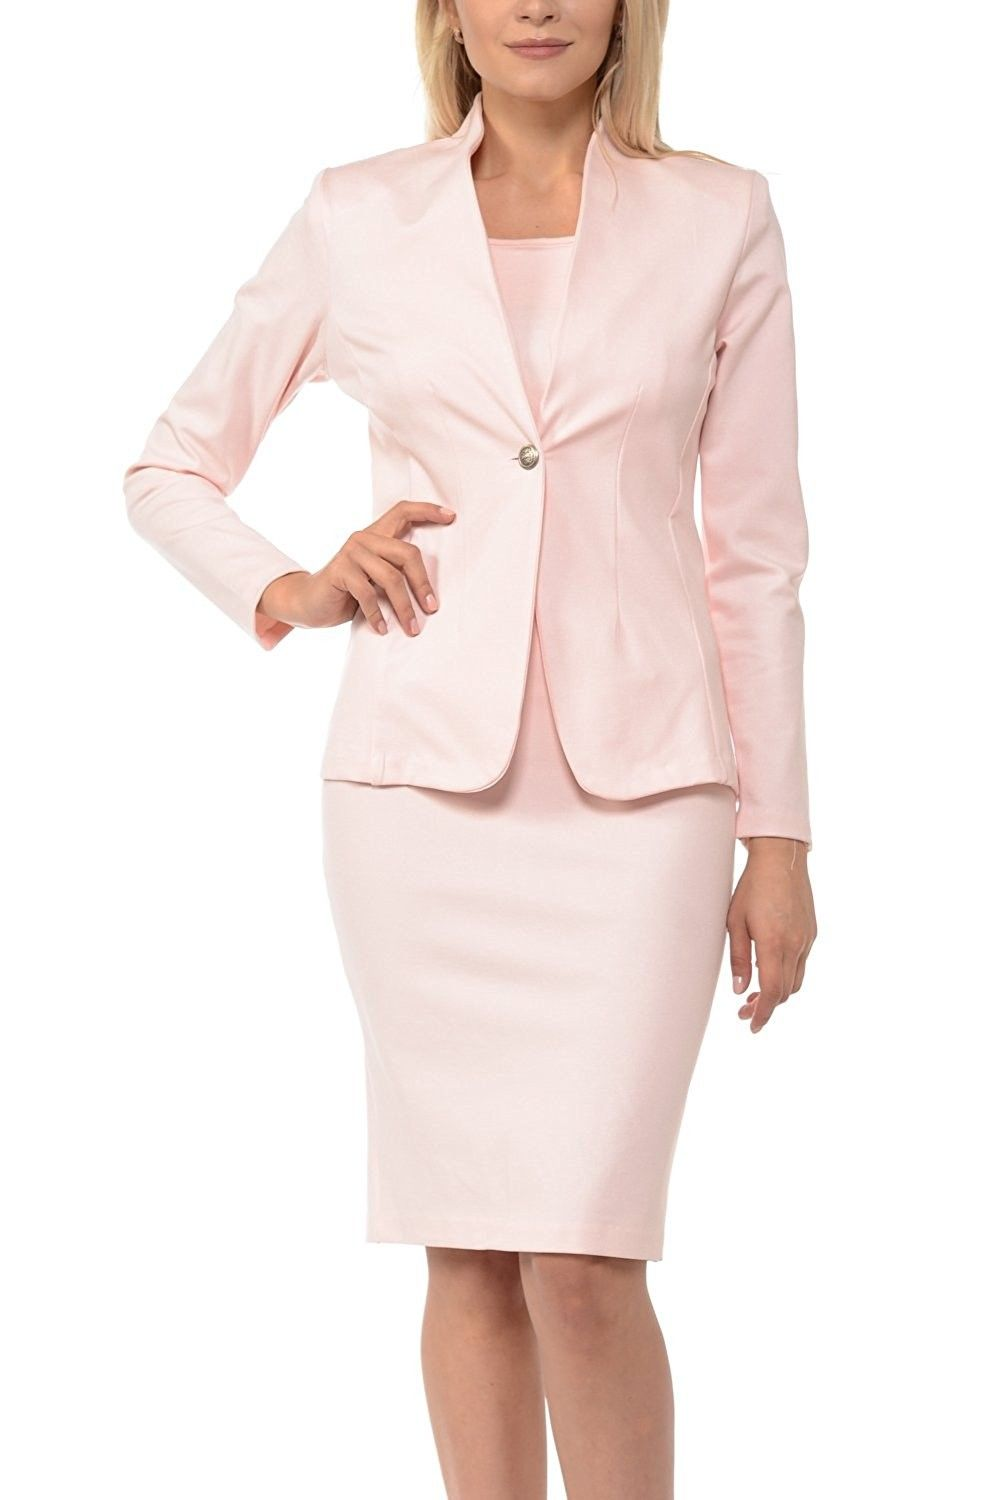 Womens Solid Long Sleeve Blazer And Bodycon Dress Suit Sets Blush